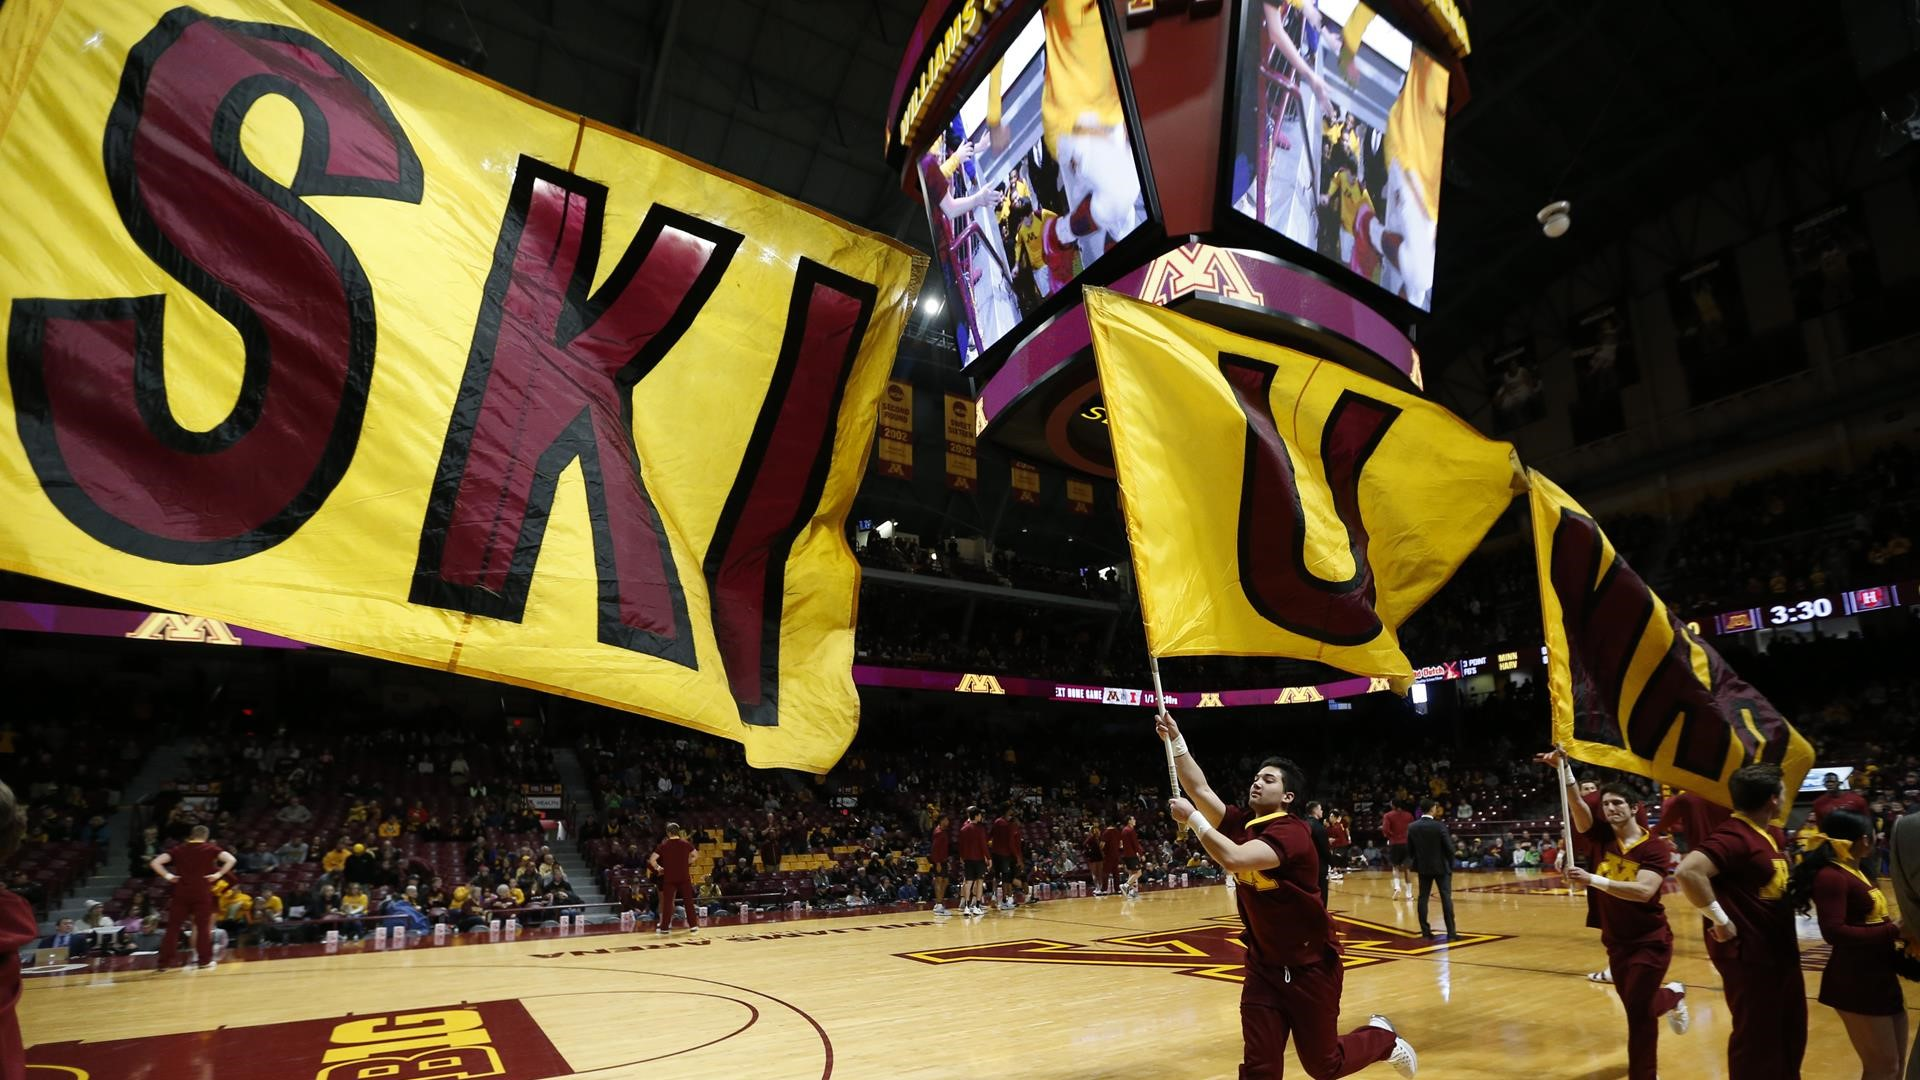 gophers announce 2018-19 men's basketball schedule - university of